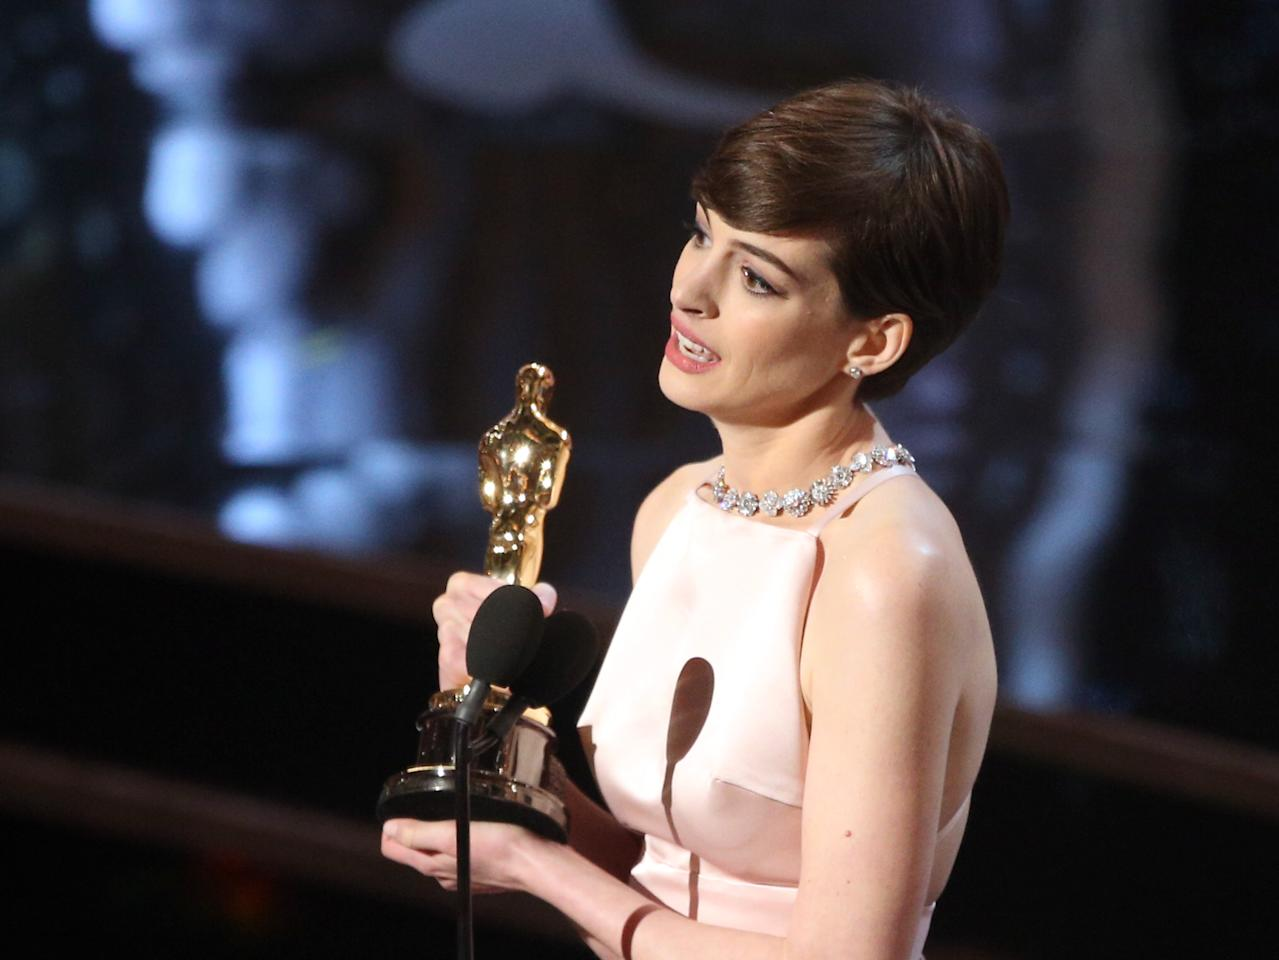 HOLLYWOOD, CA - FEBRUARY 24: Actress Anne Hathaway accepts an award onstage during the Oscars held at the Dolby Theatre on February 24, 2013 in Hollywood, California. (Photo by Mark Davis/WireImage)